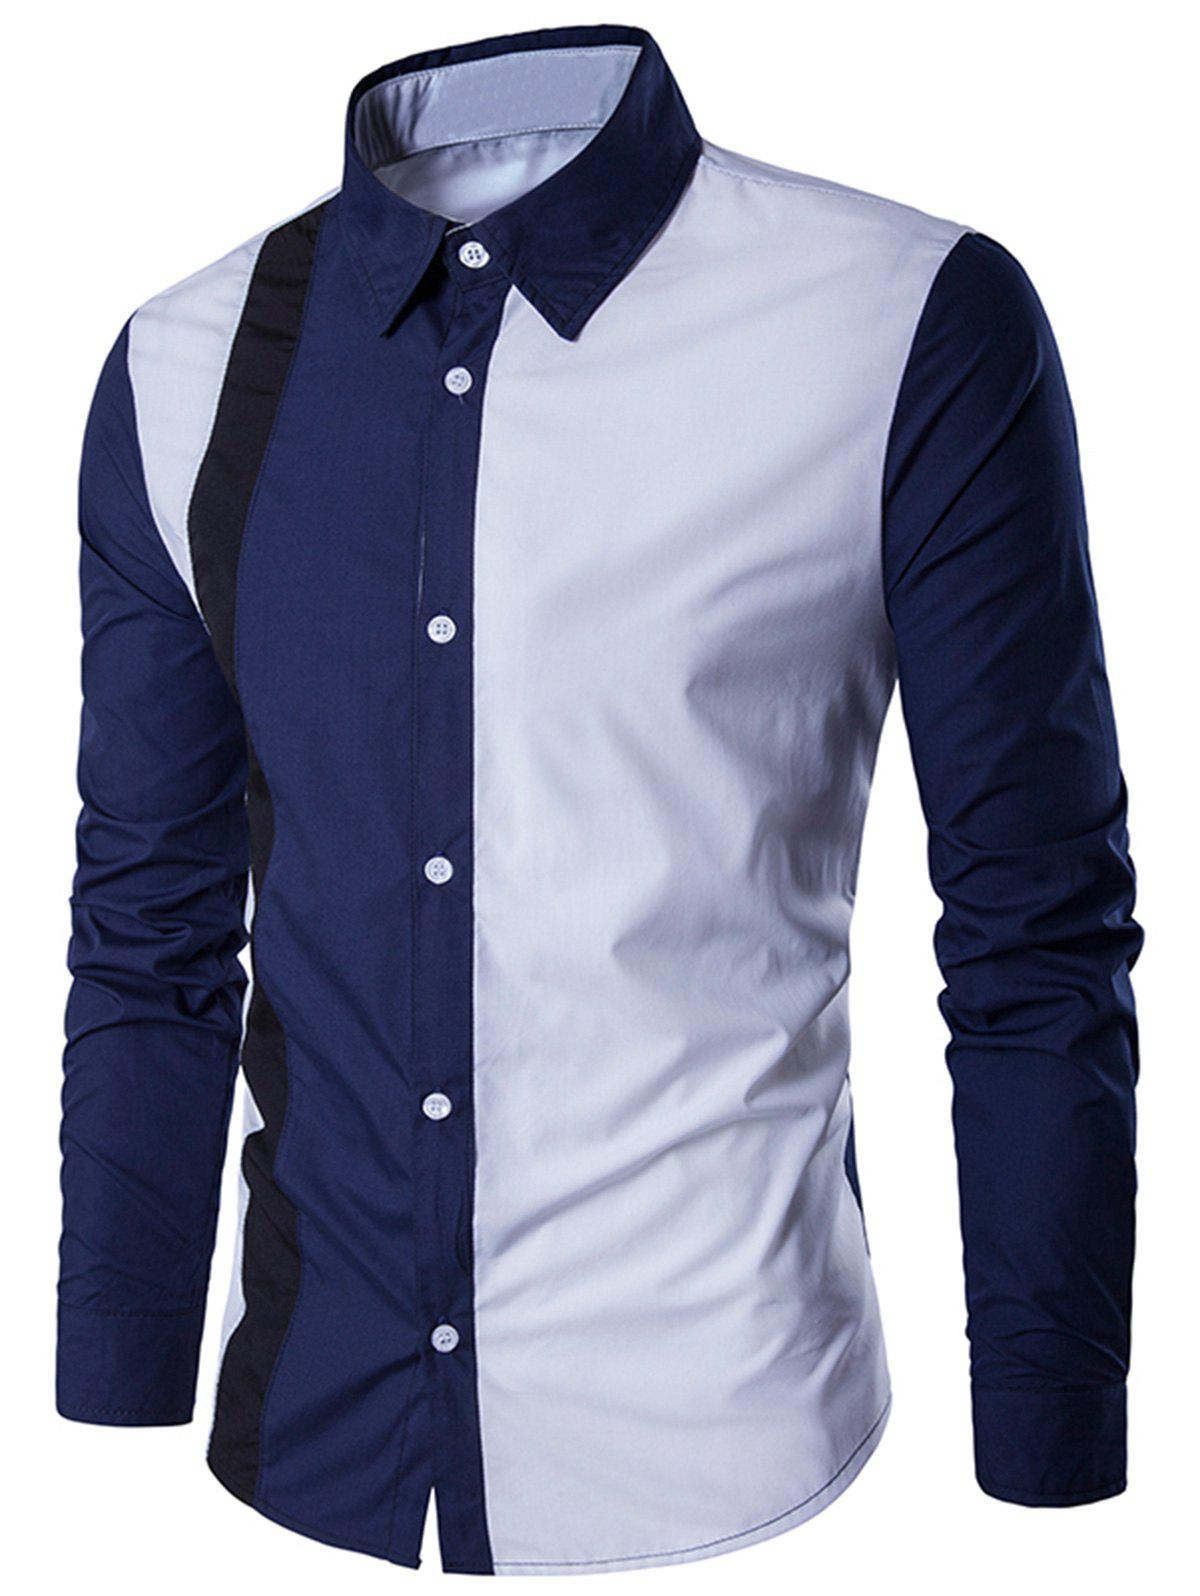 Button Up Two Tone Casual Shirt button up two tone work shirt